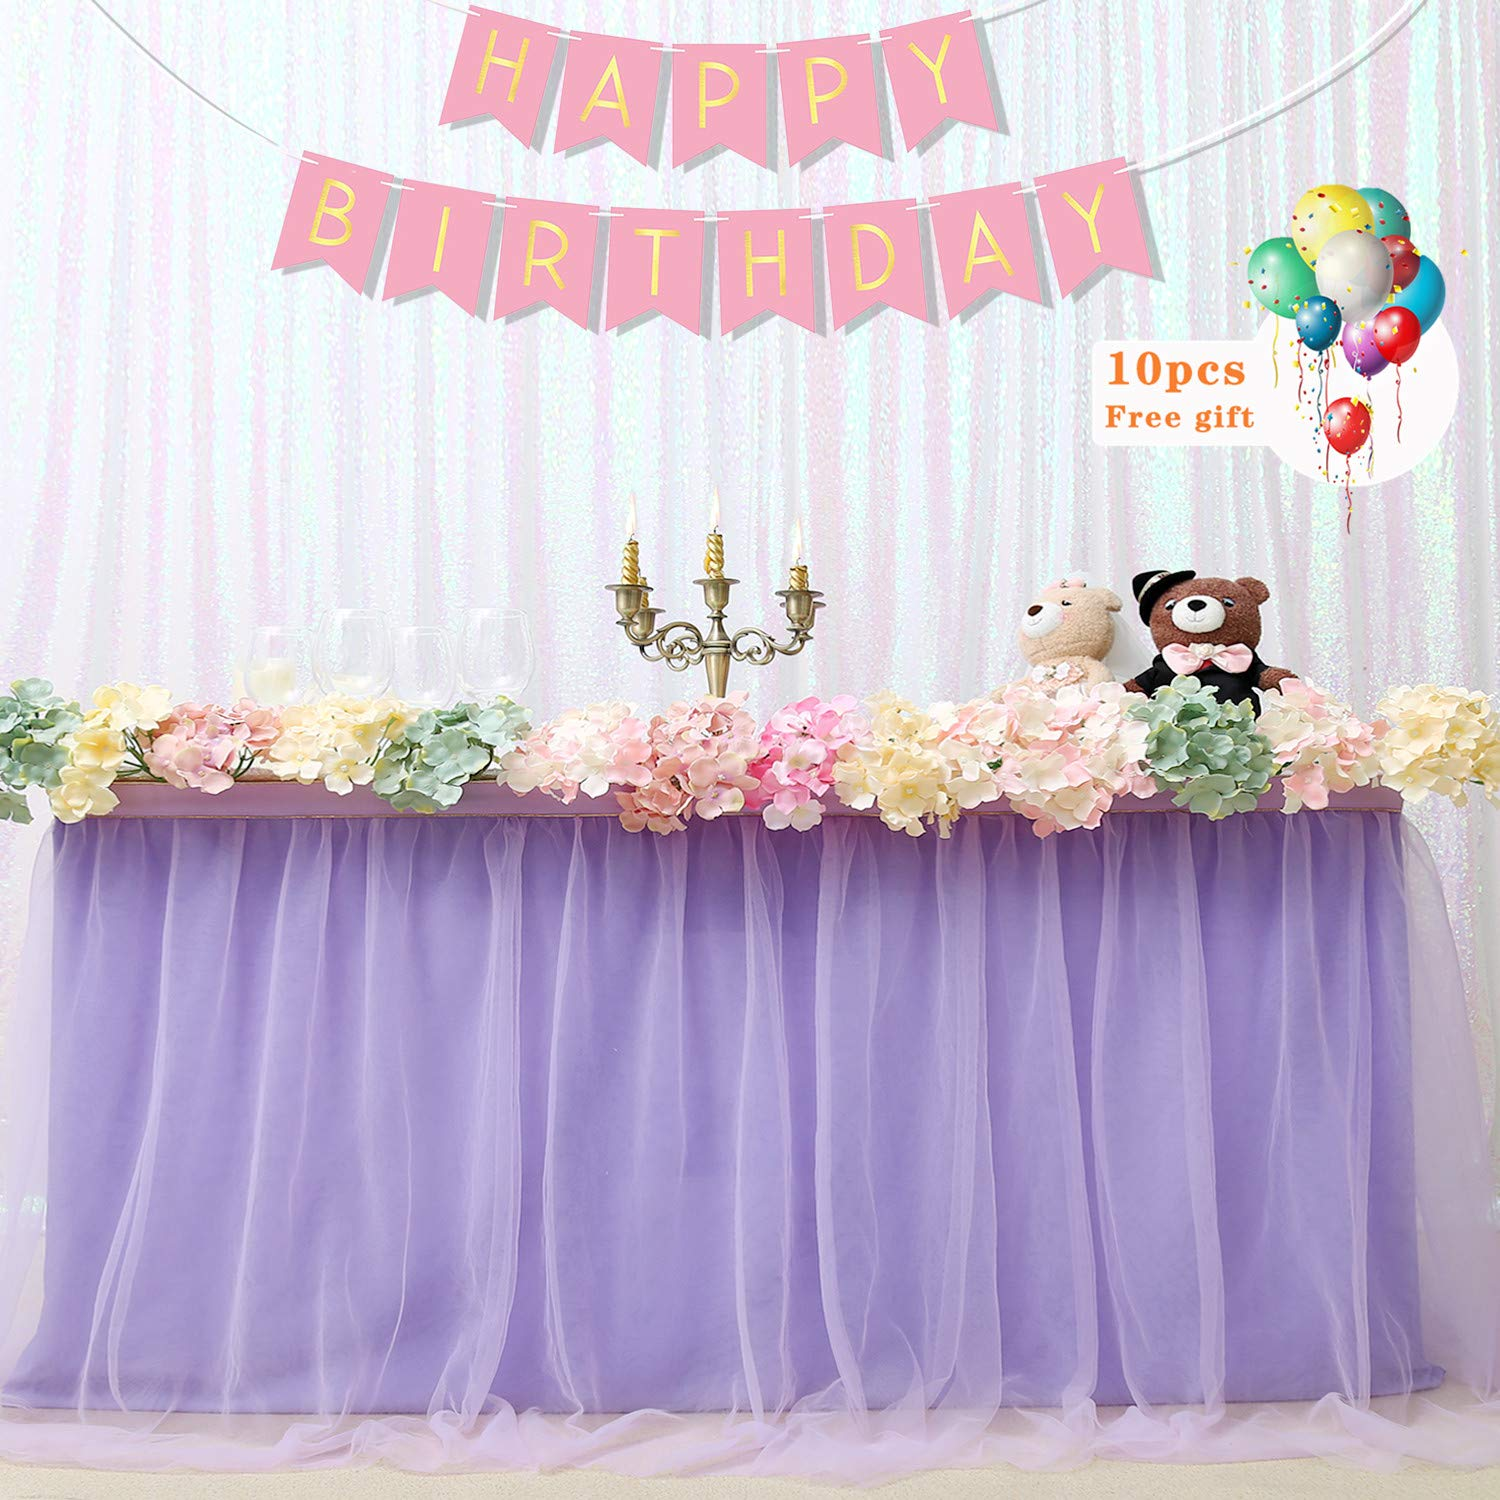 B-COOL Lovely Light purple Tulle Tutu Table Skirt 4.5 yards Tulle Table Cloth Skirt Customized Romantic Girl Princess Birthday Party Table Skirts Banquet Table Decorations(L14(ft) H 30in) by B-COOL (Image #1)